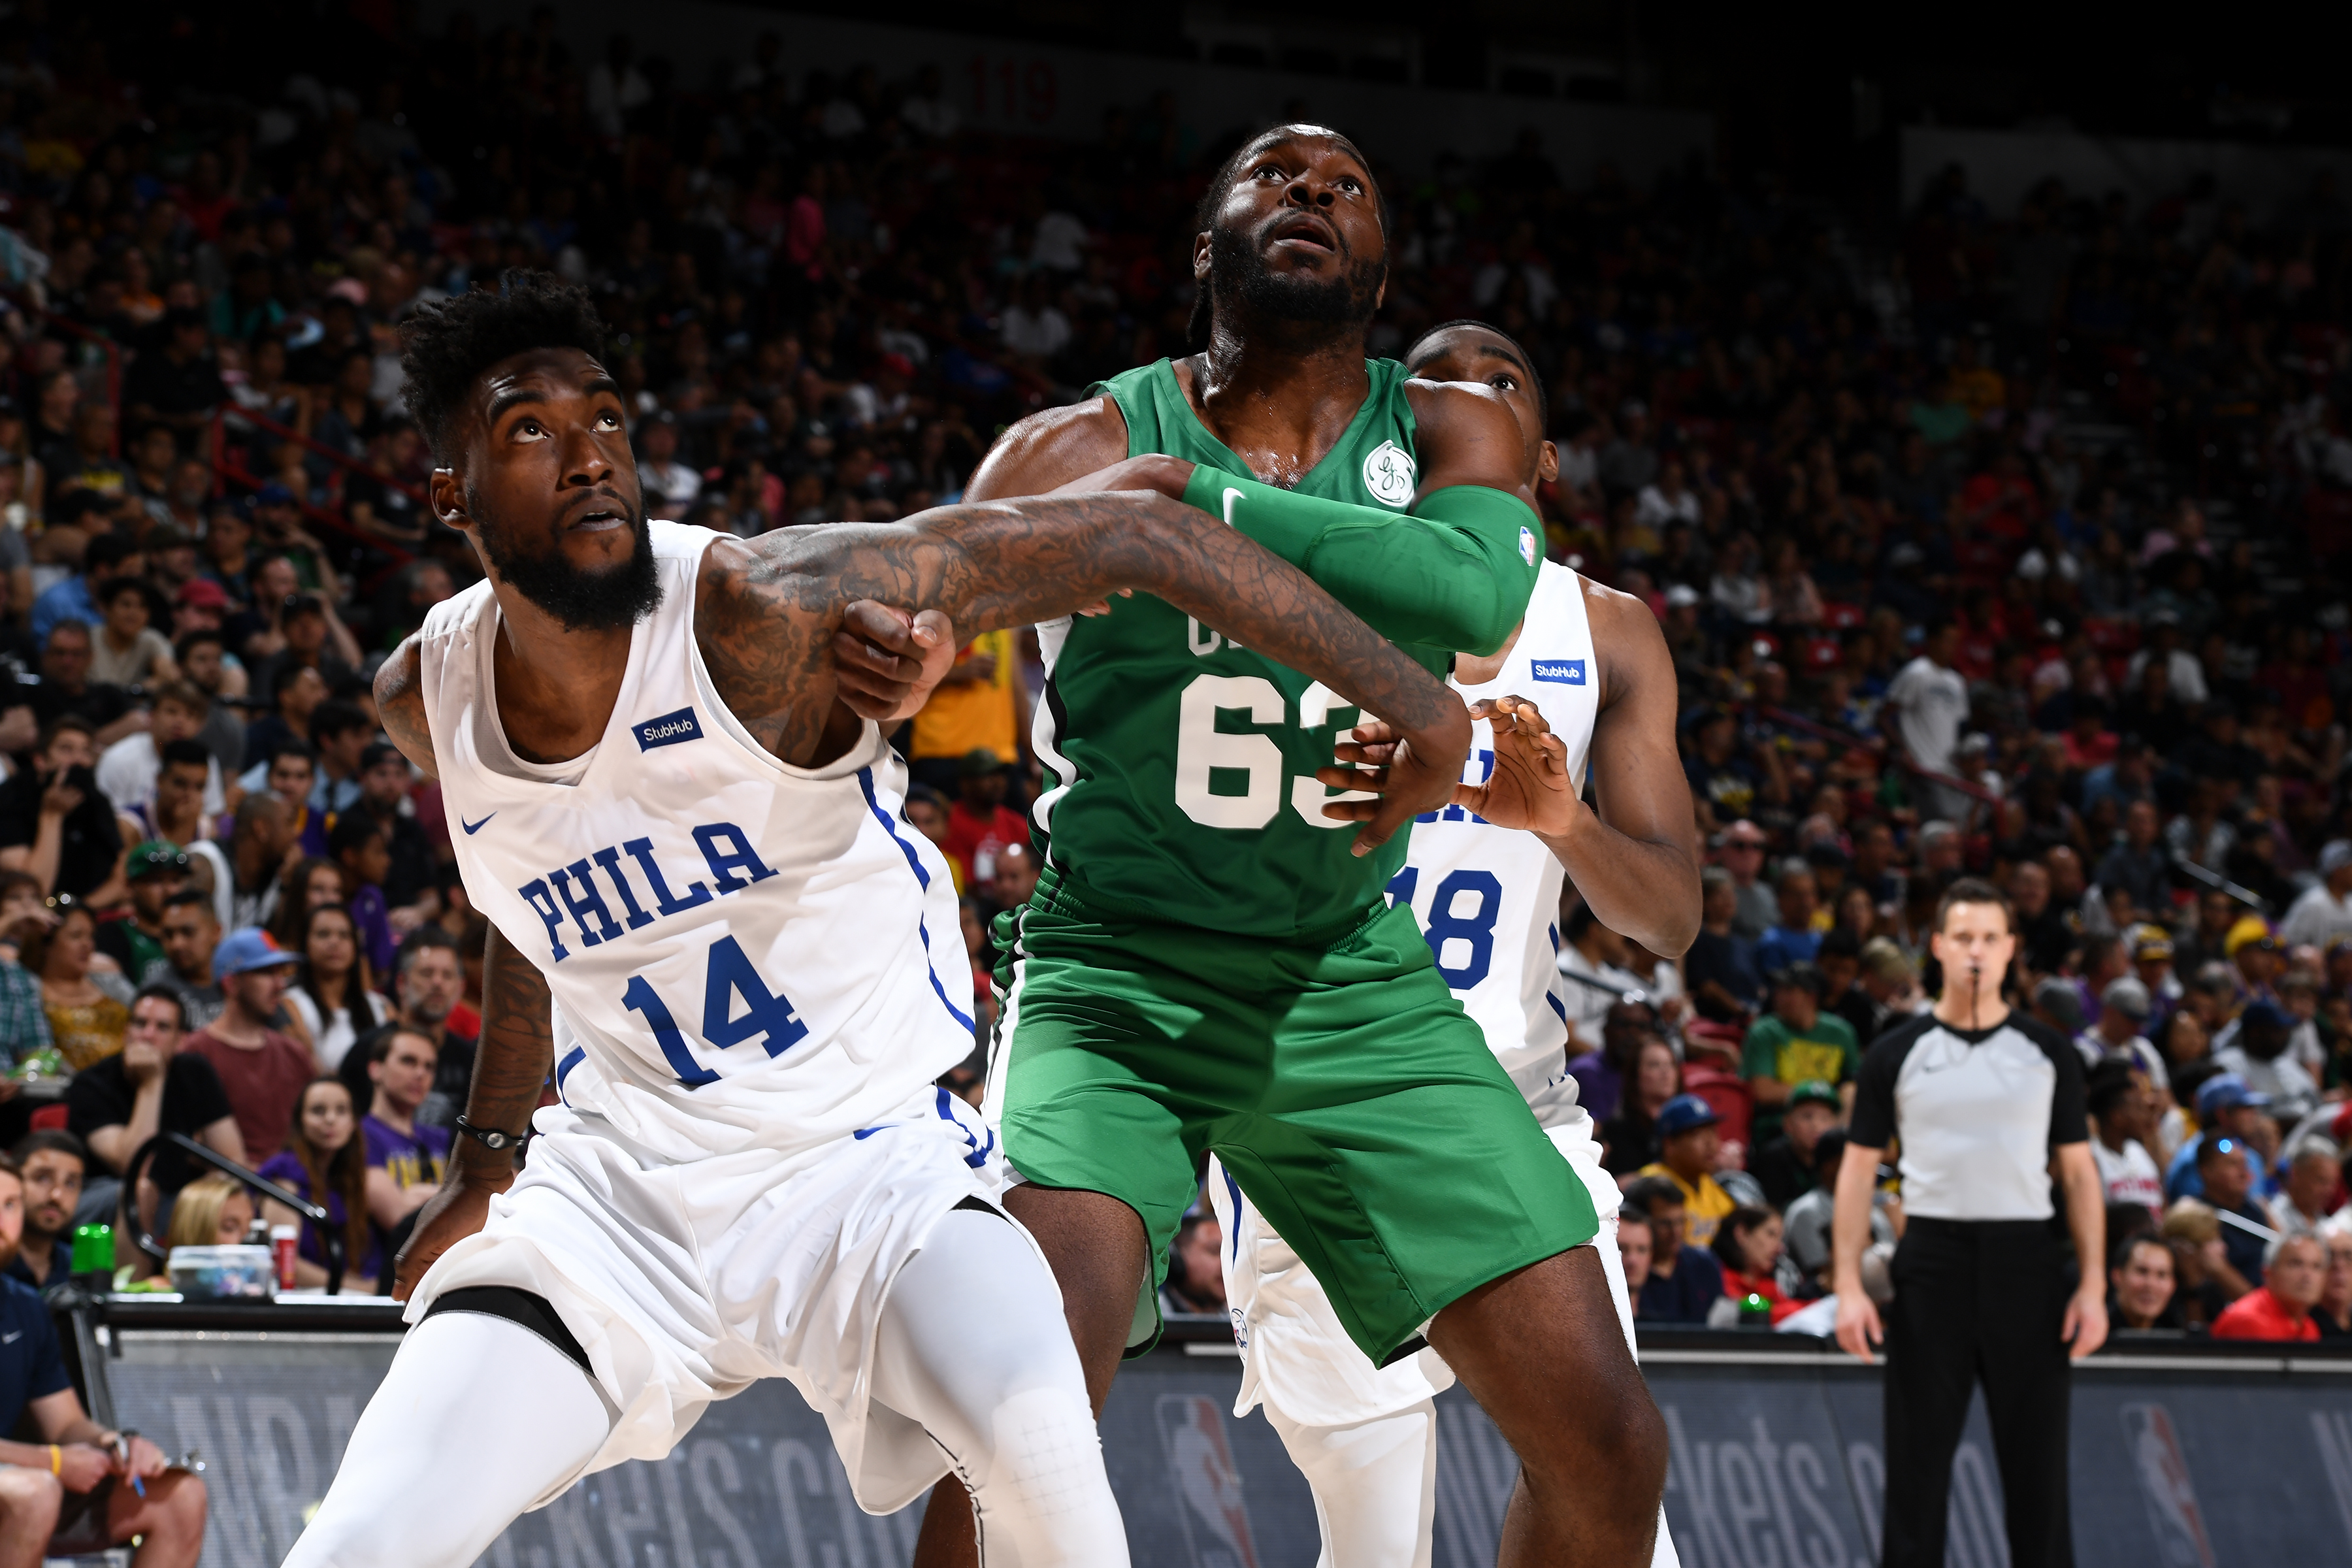 2019 Las Vegas Summer League - Day 2 - Boston Celtics v Philadelphia 76ers